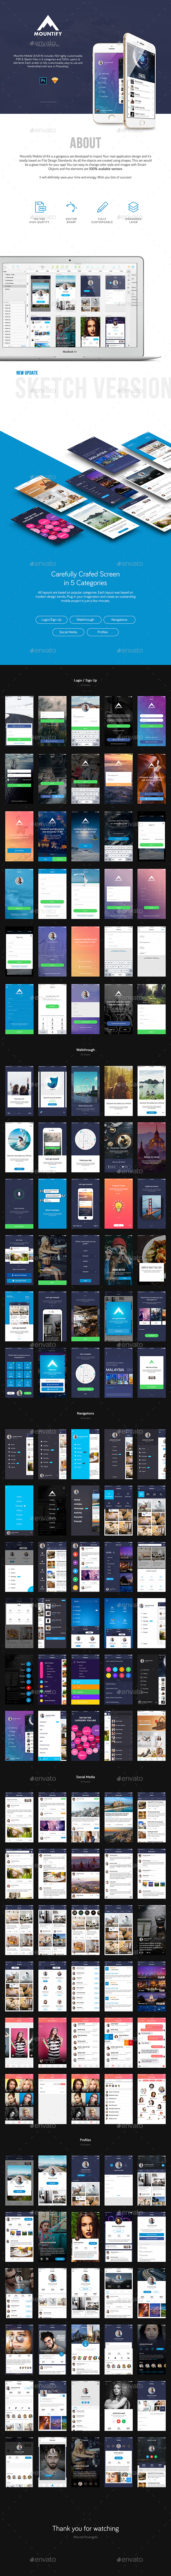 Wireframe App UI Kit (User Interfaces)